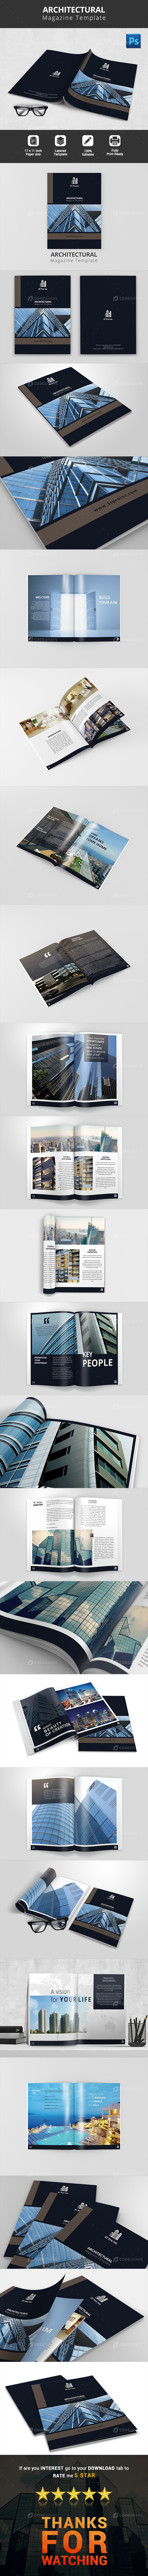 Architecture Magazine Template - 26 Pages